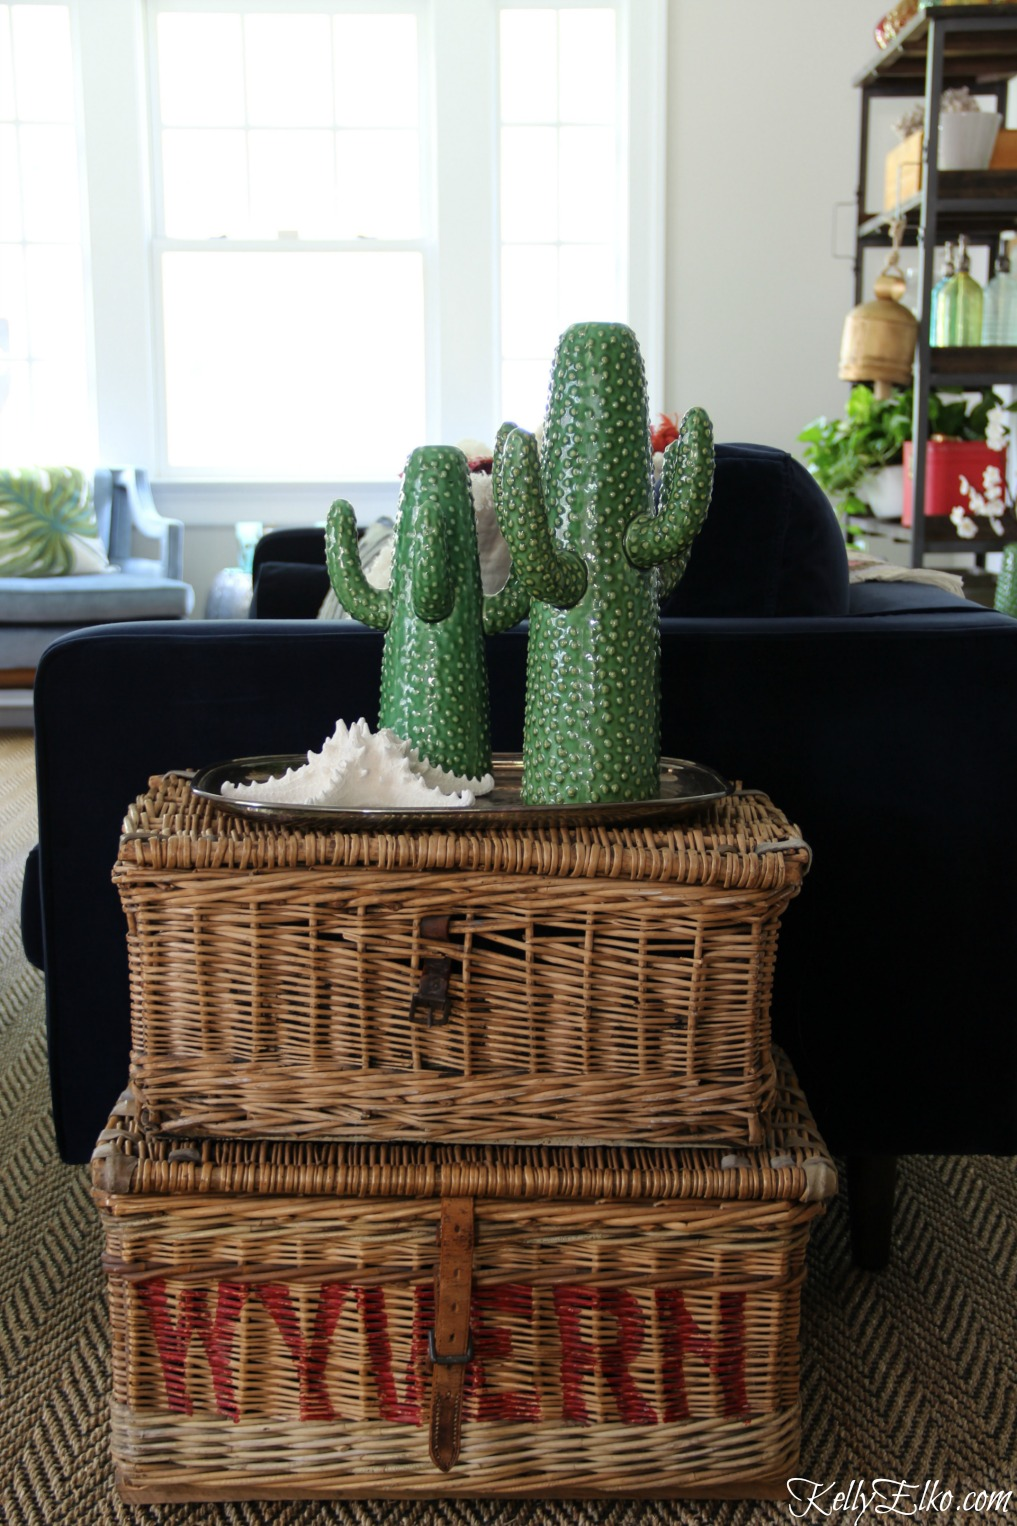 Stacked baskets make a unique side table and the cactus vases are so much fun kellyelko.com